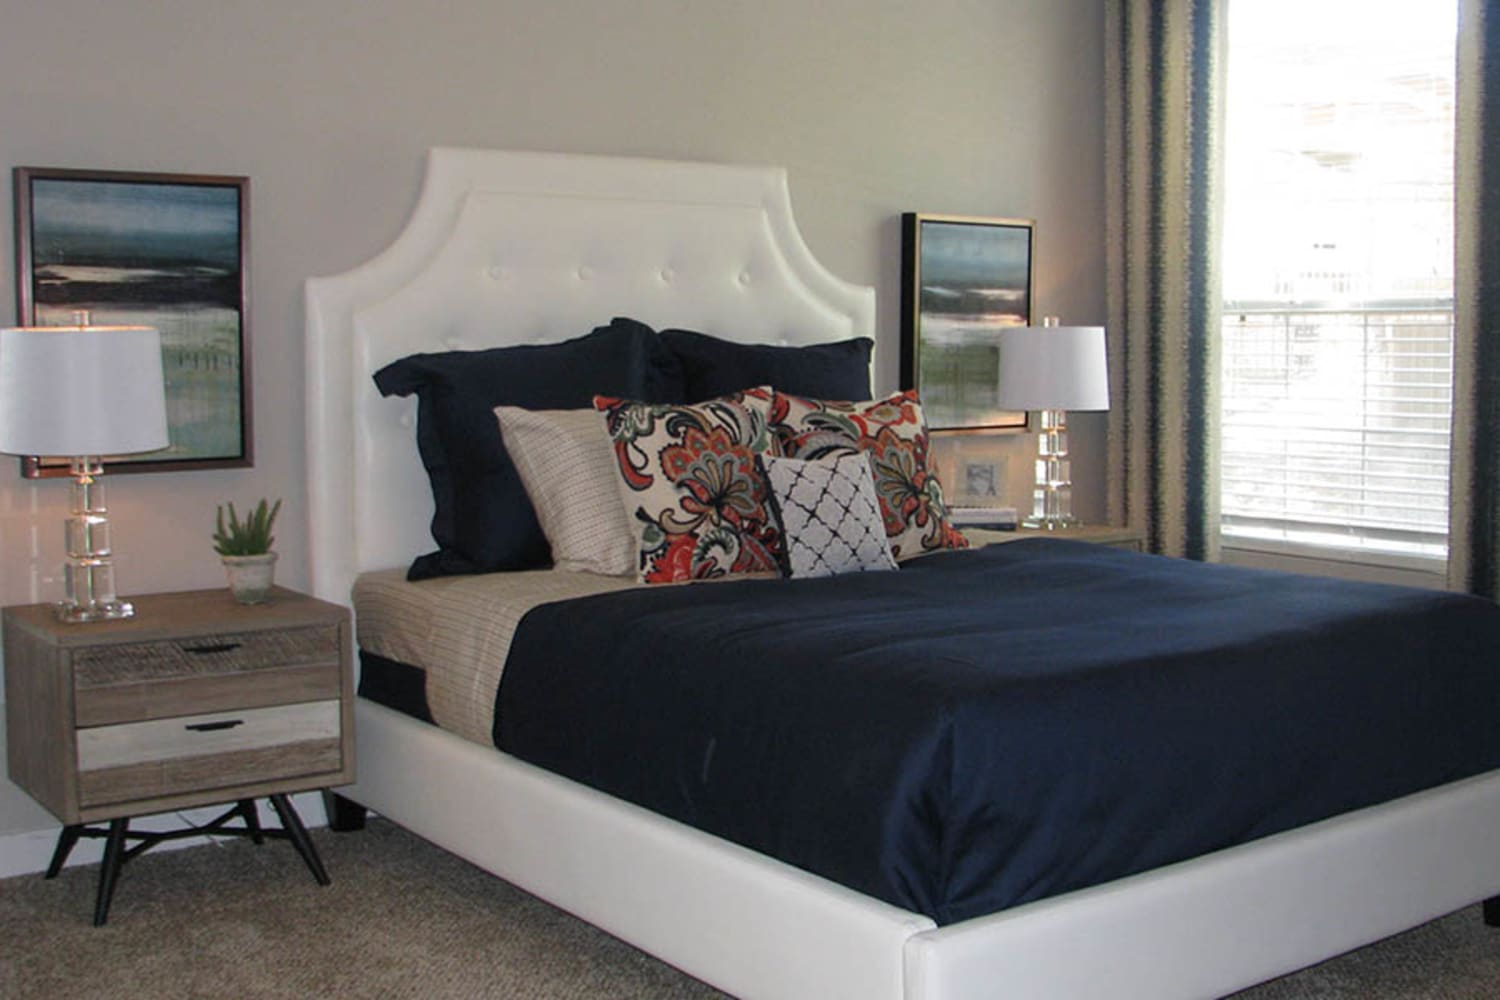 Ocotillo Bay Apartments in Chandler, Arizona, offer large bedrooms to fit all of your furniture